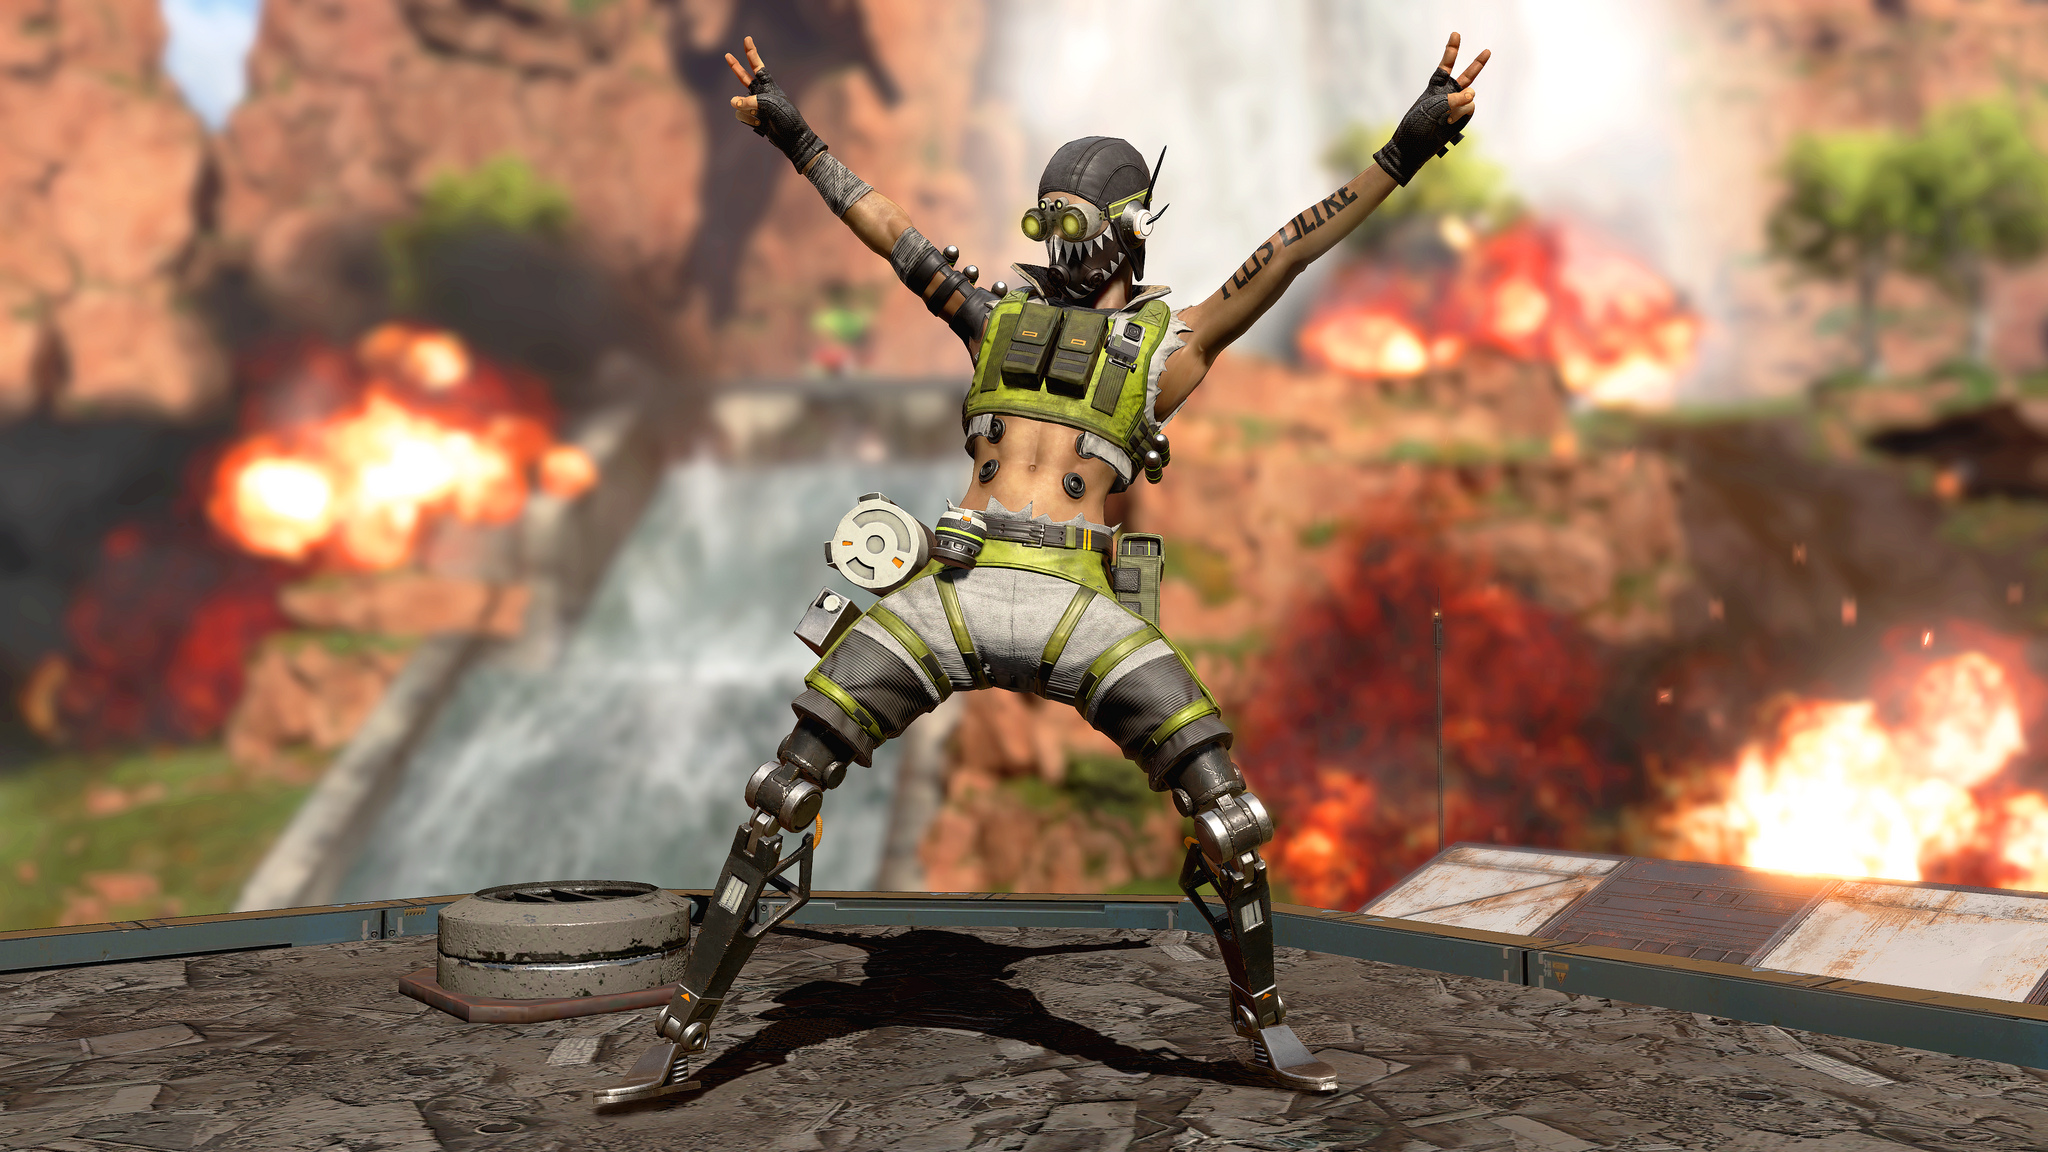 Octane is Apex Legends' first new character: here's what he can do